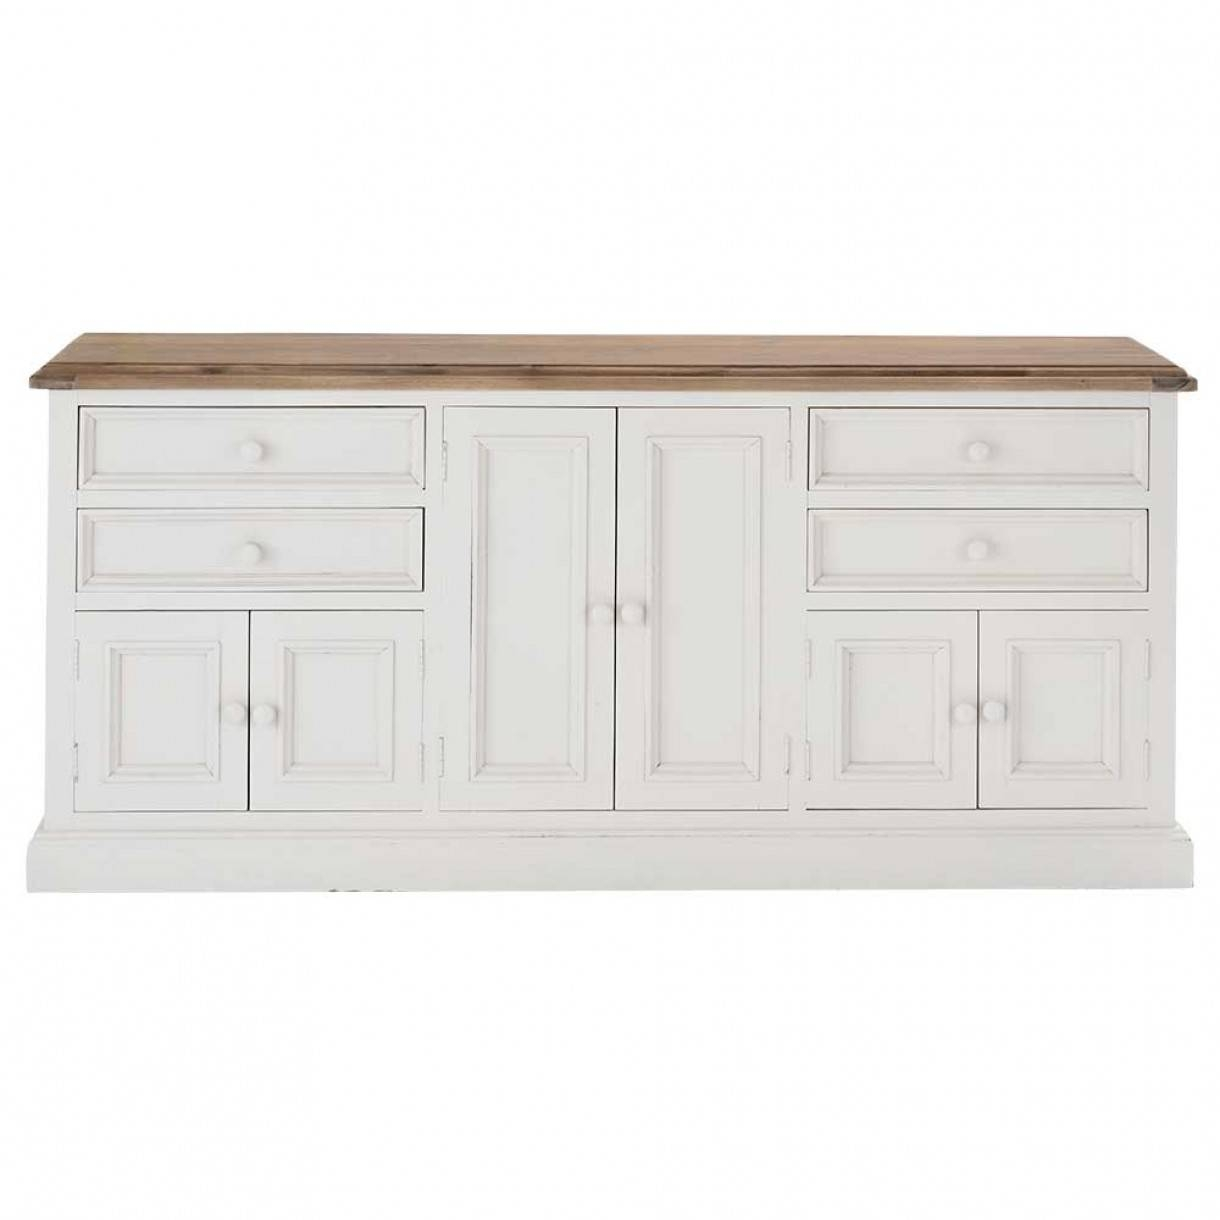 Buy Buffets And Sideboards Online | Dining | Early Settler Furniture For Large White Sideboards (View 7 of 15)